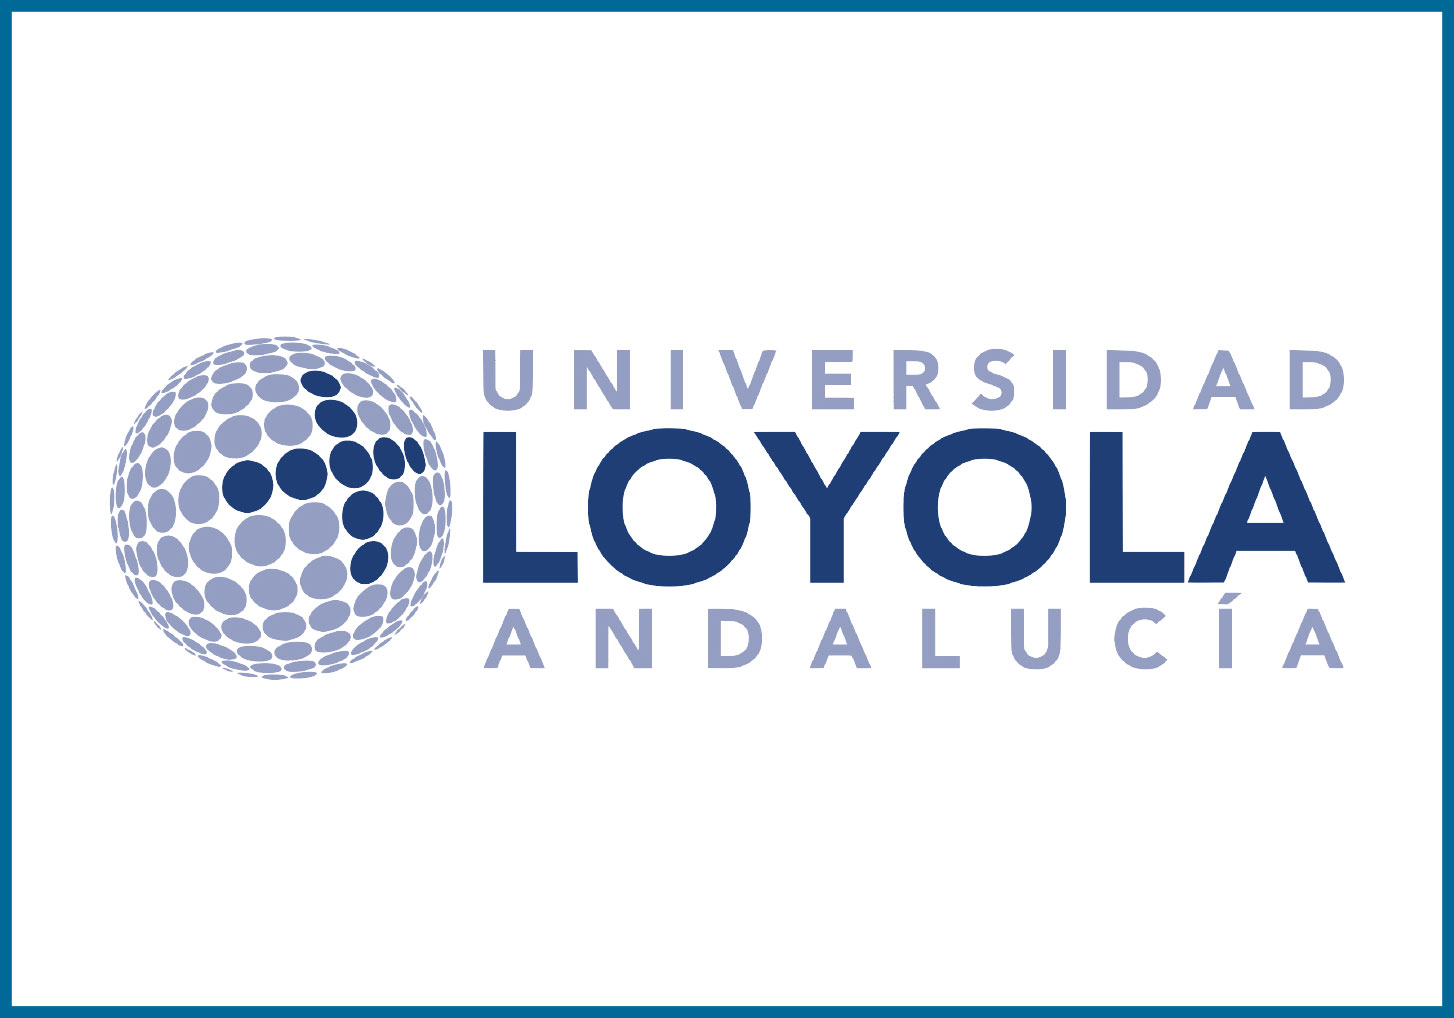 5 Universidad Loyola